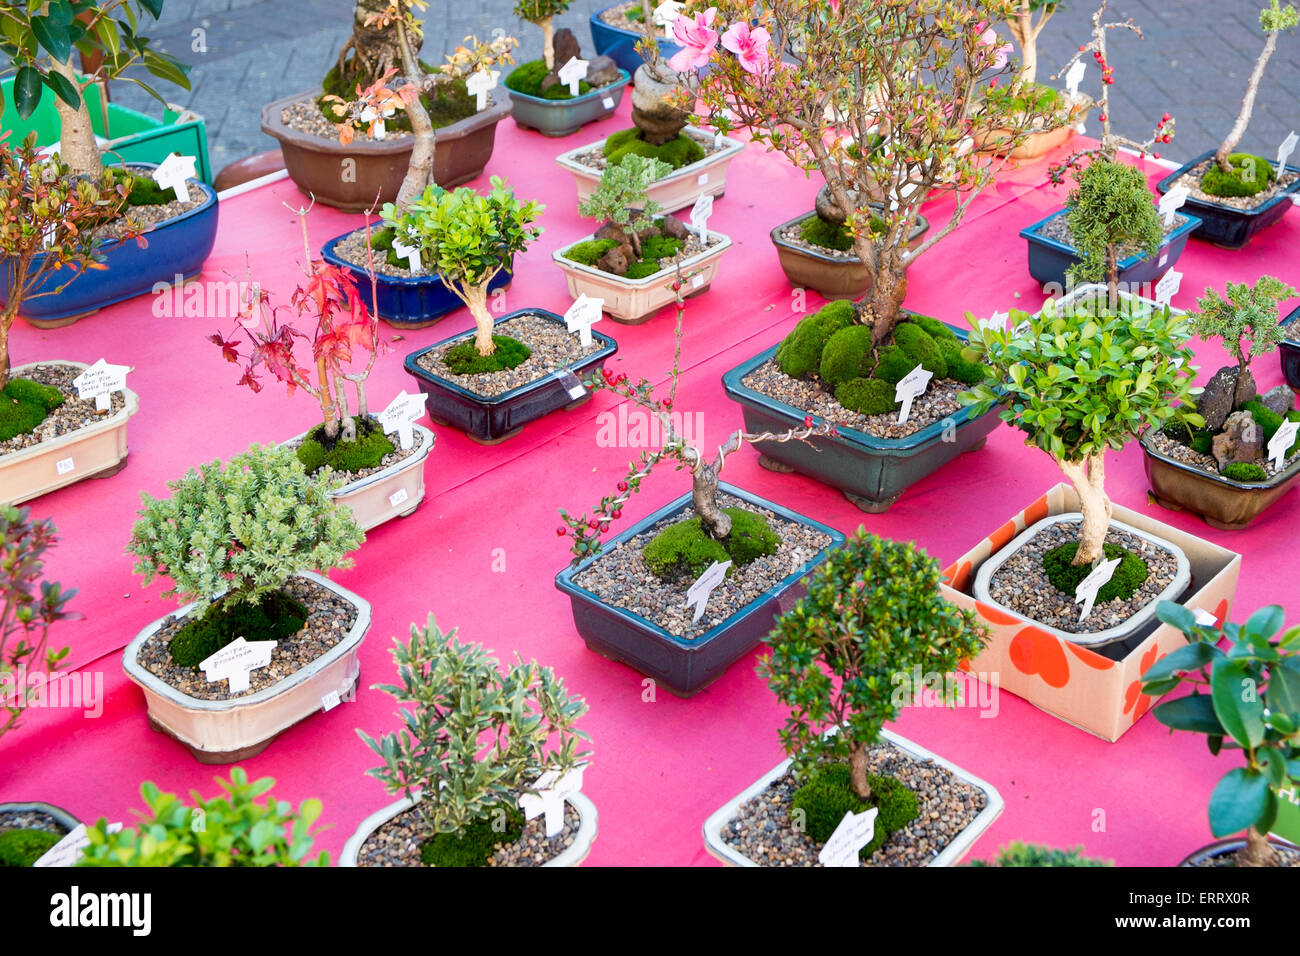 bonsai trees and plants in pots for sale on a market stall in stock photo 83503863 alamy. Black Bedroom Furniture Sets. Home Design Ideas